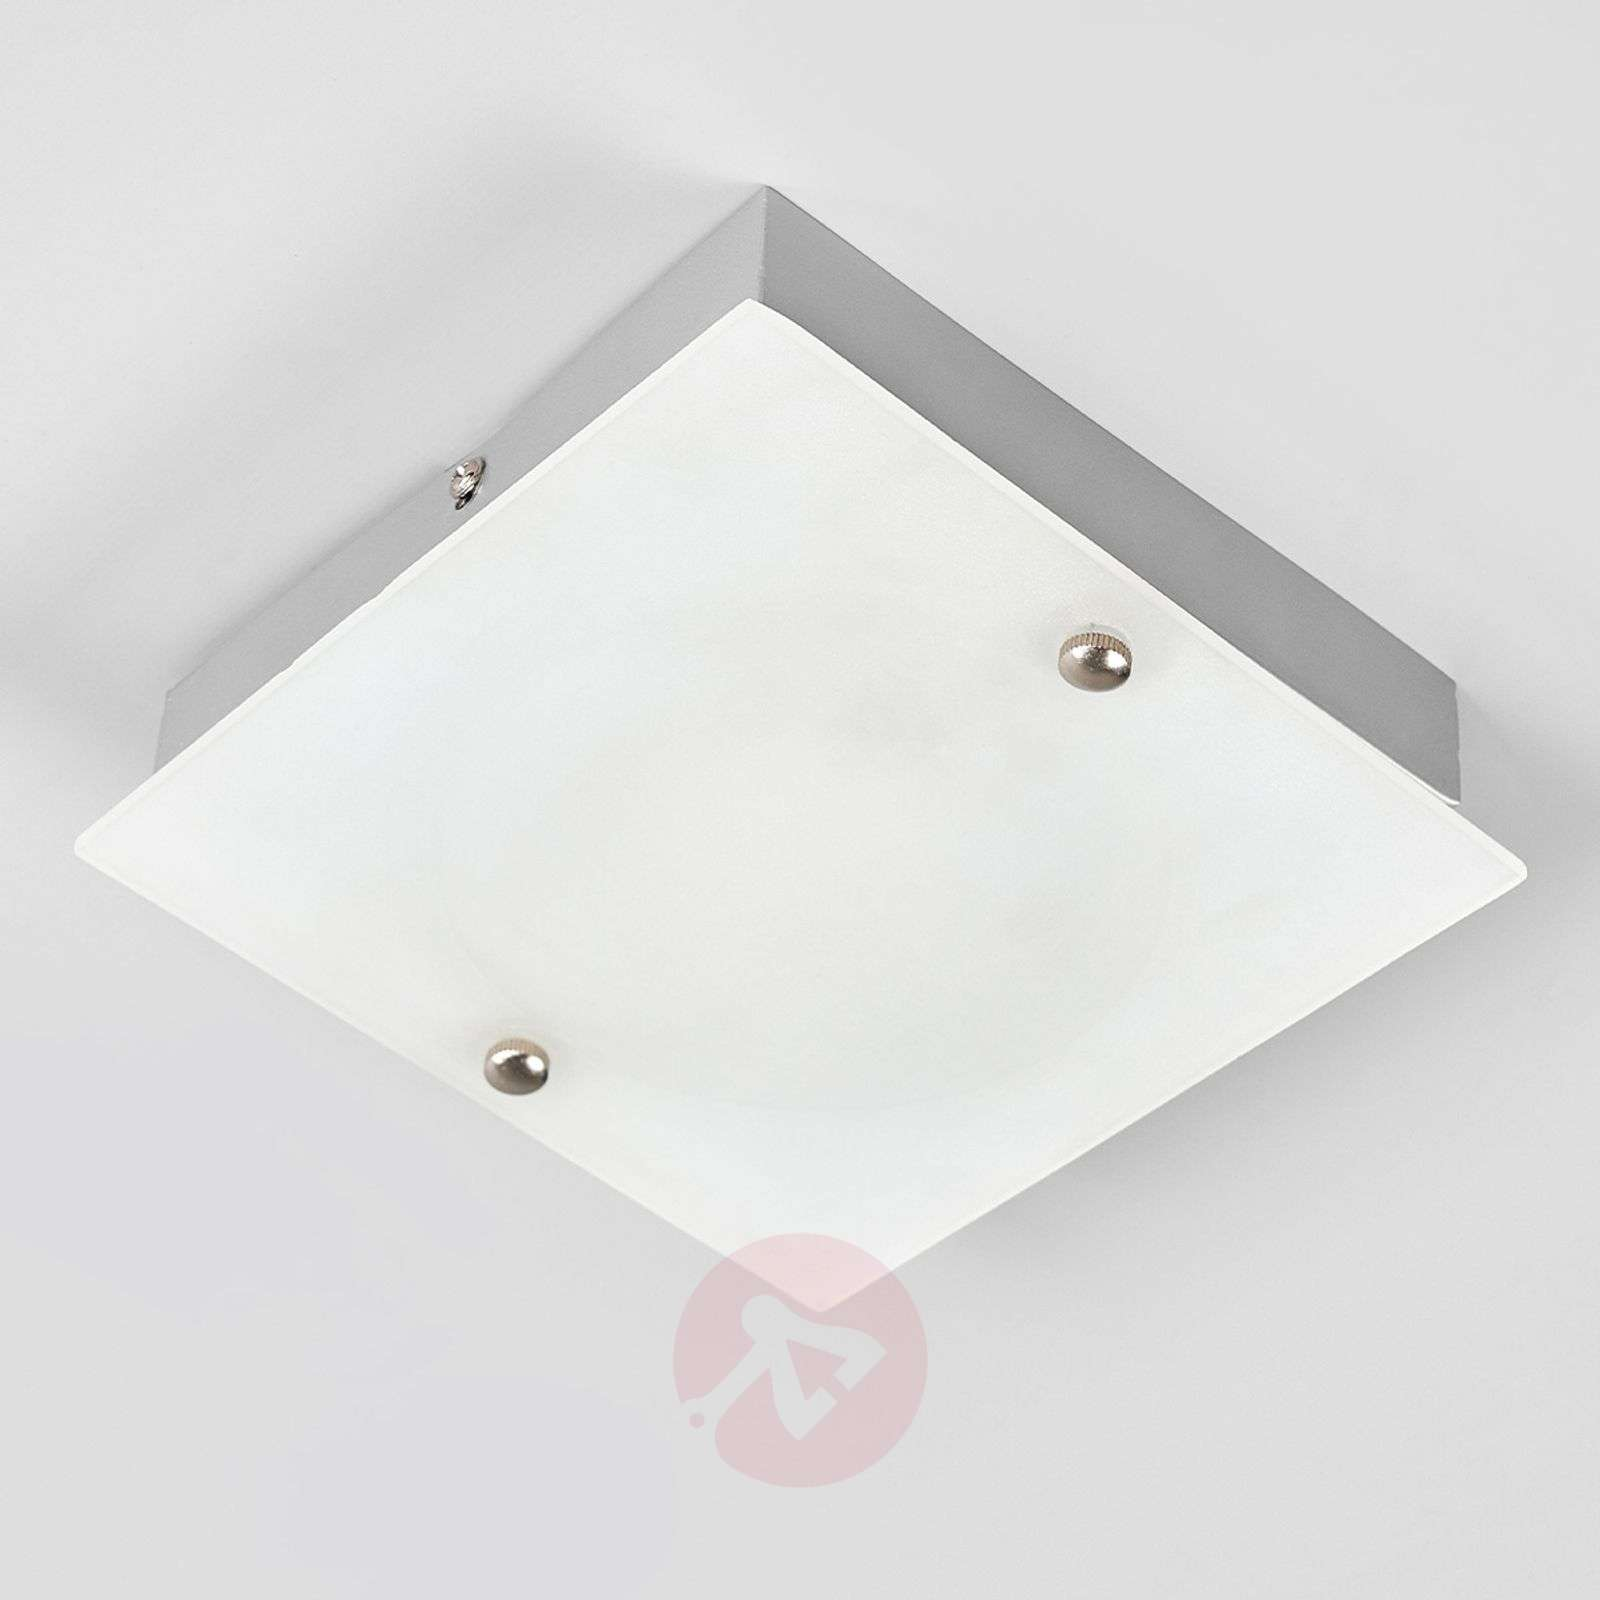 Decorative LED wall light Annika-9625082-01